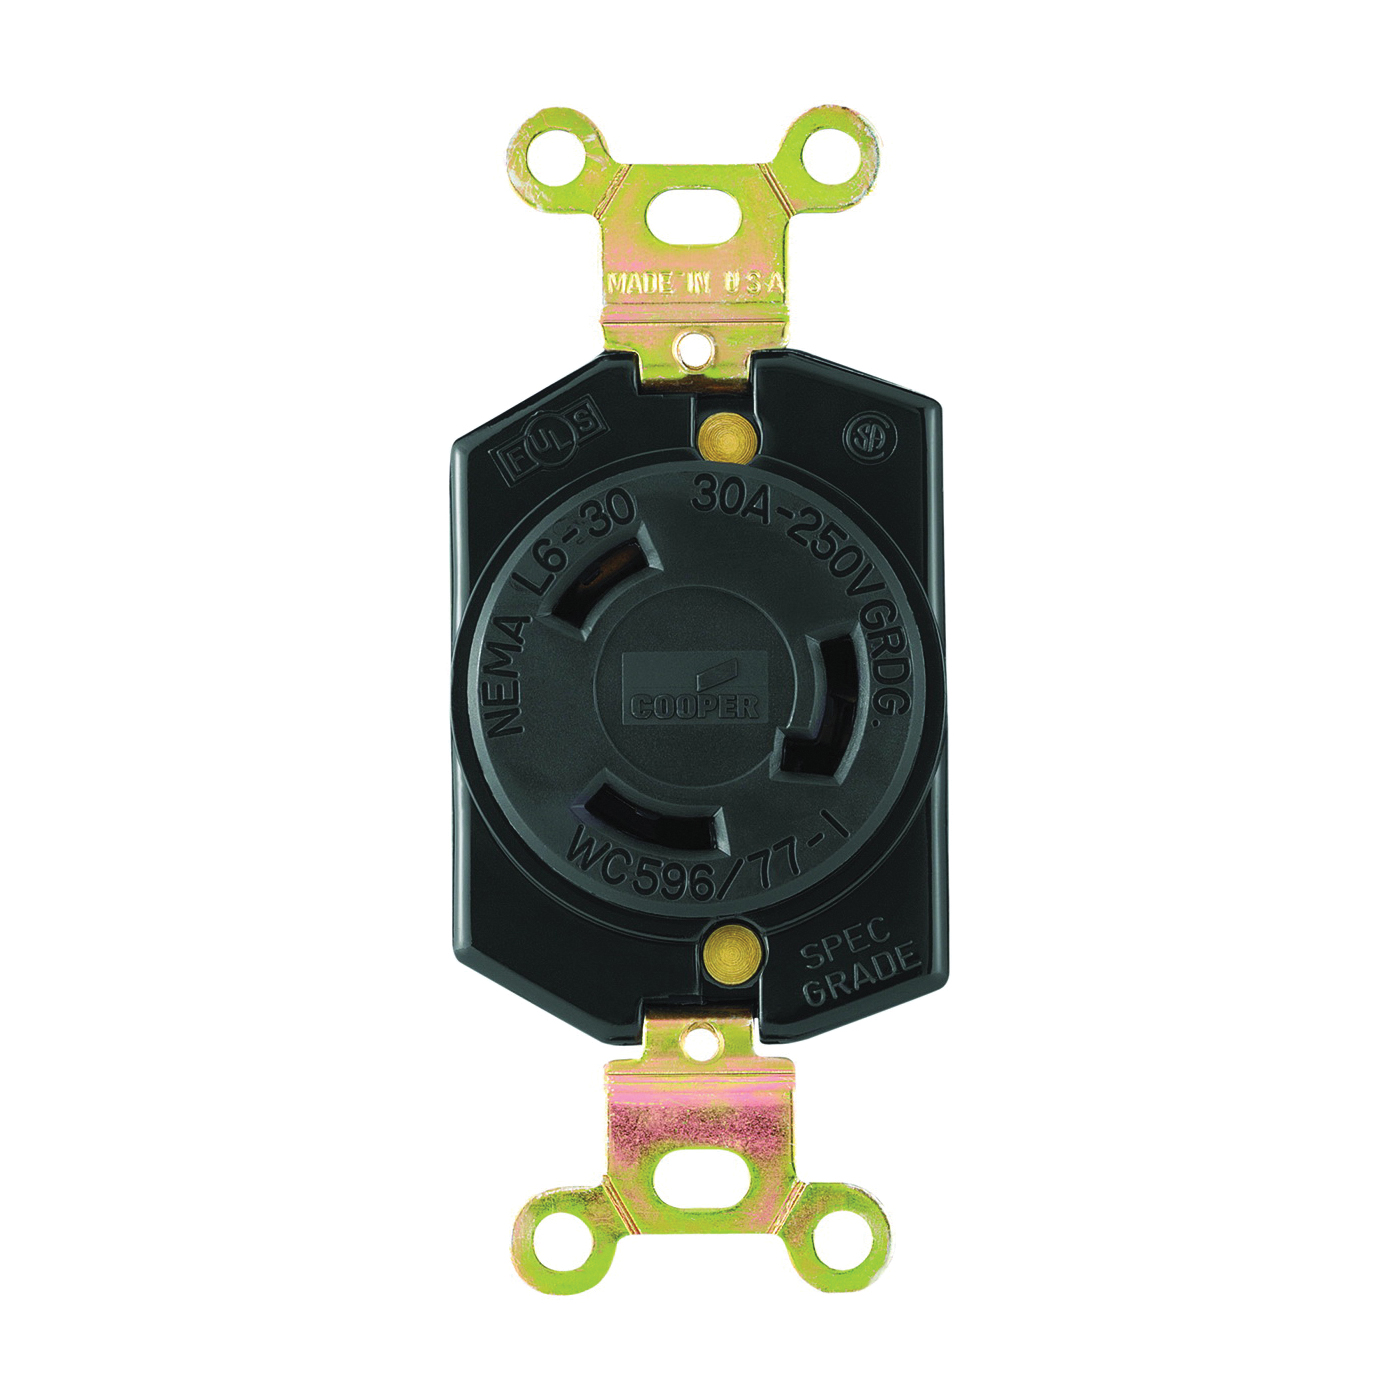 Picture of Eaton Wiring Devices L630R Single Receptacle, 2-Pole, 250 V, 30 A, Back, Side Wiring, NEMA L6-30, Black